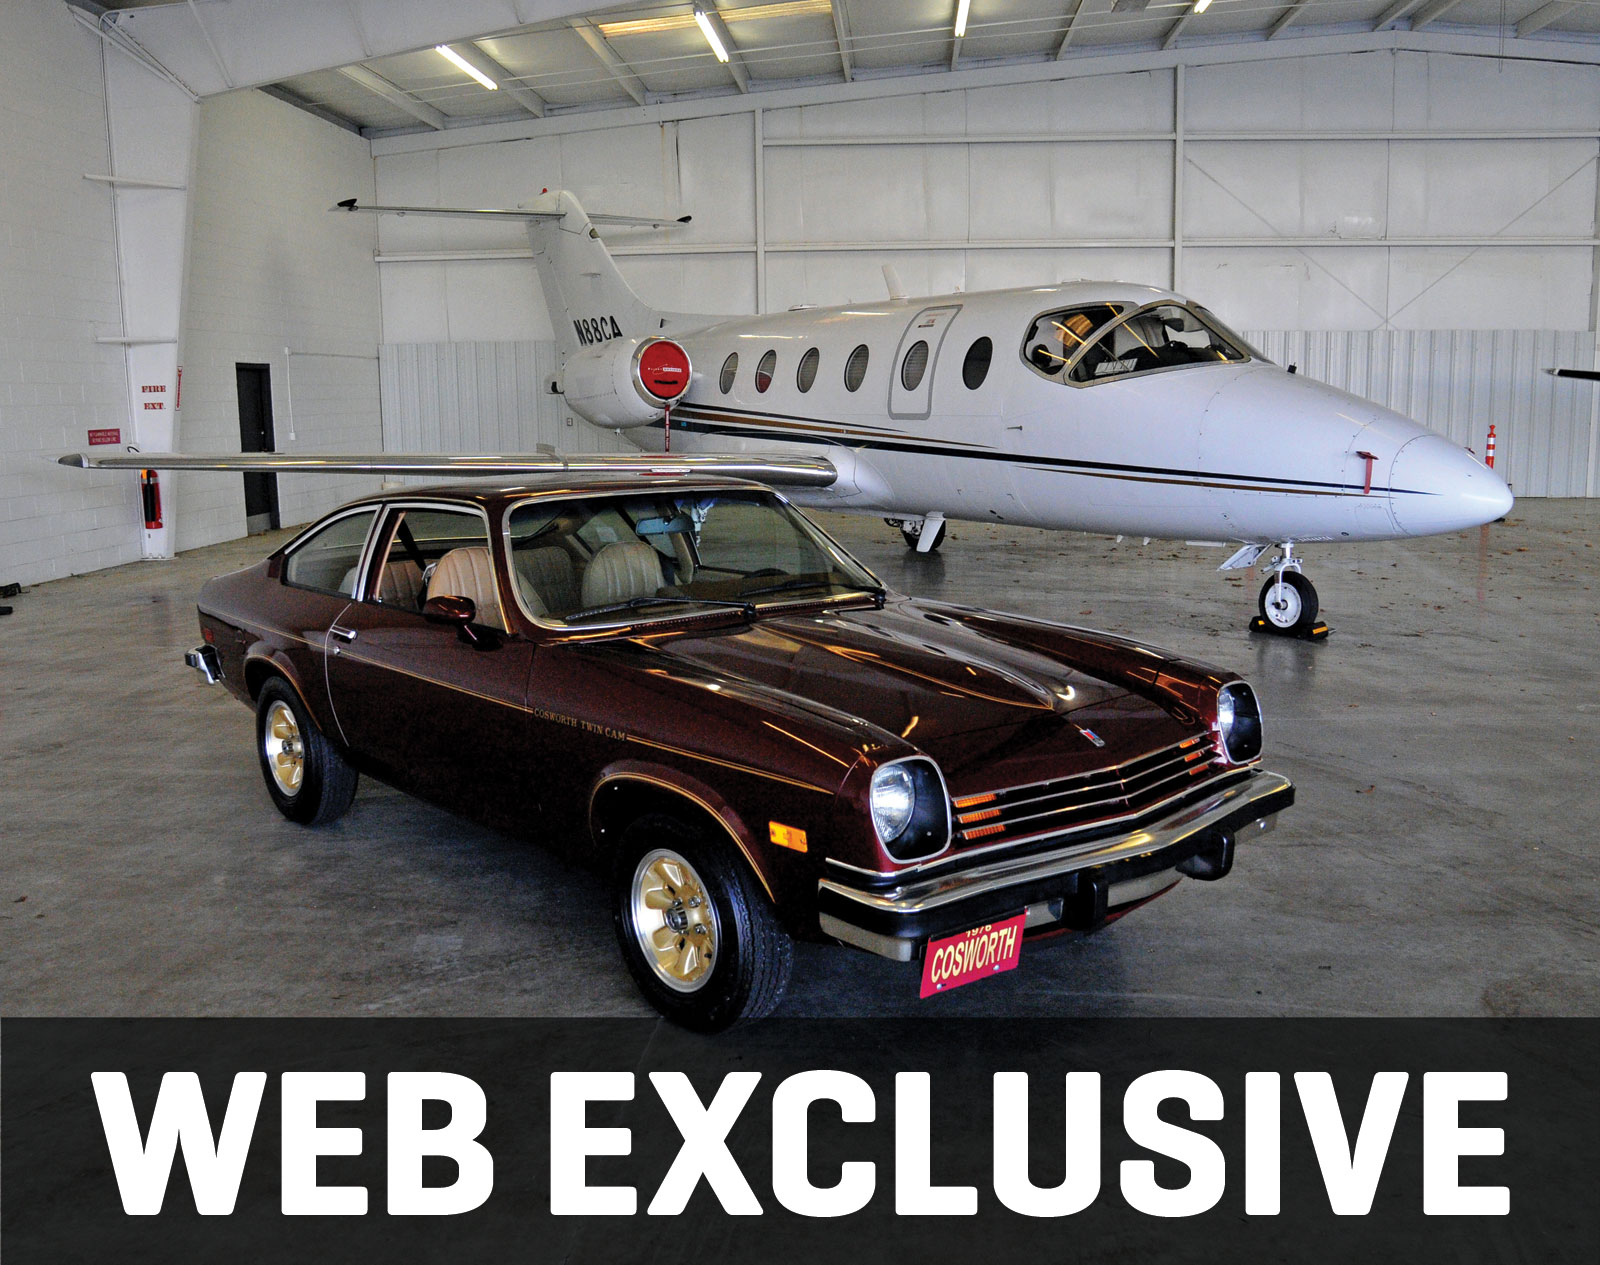 1971 Chrevolet Vega - Exclusive Photos!